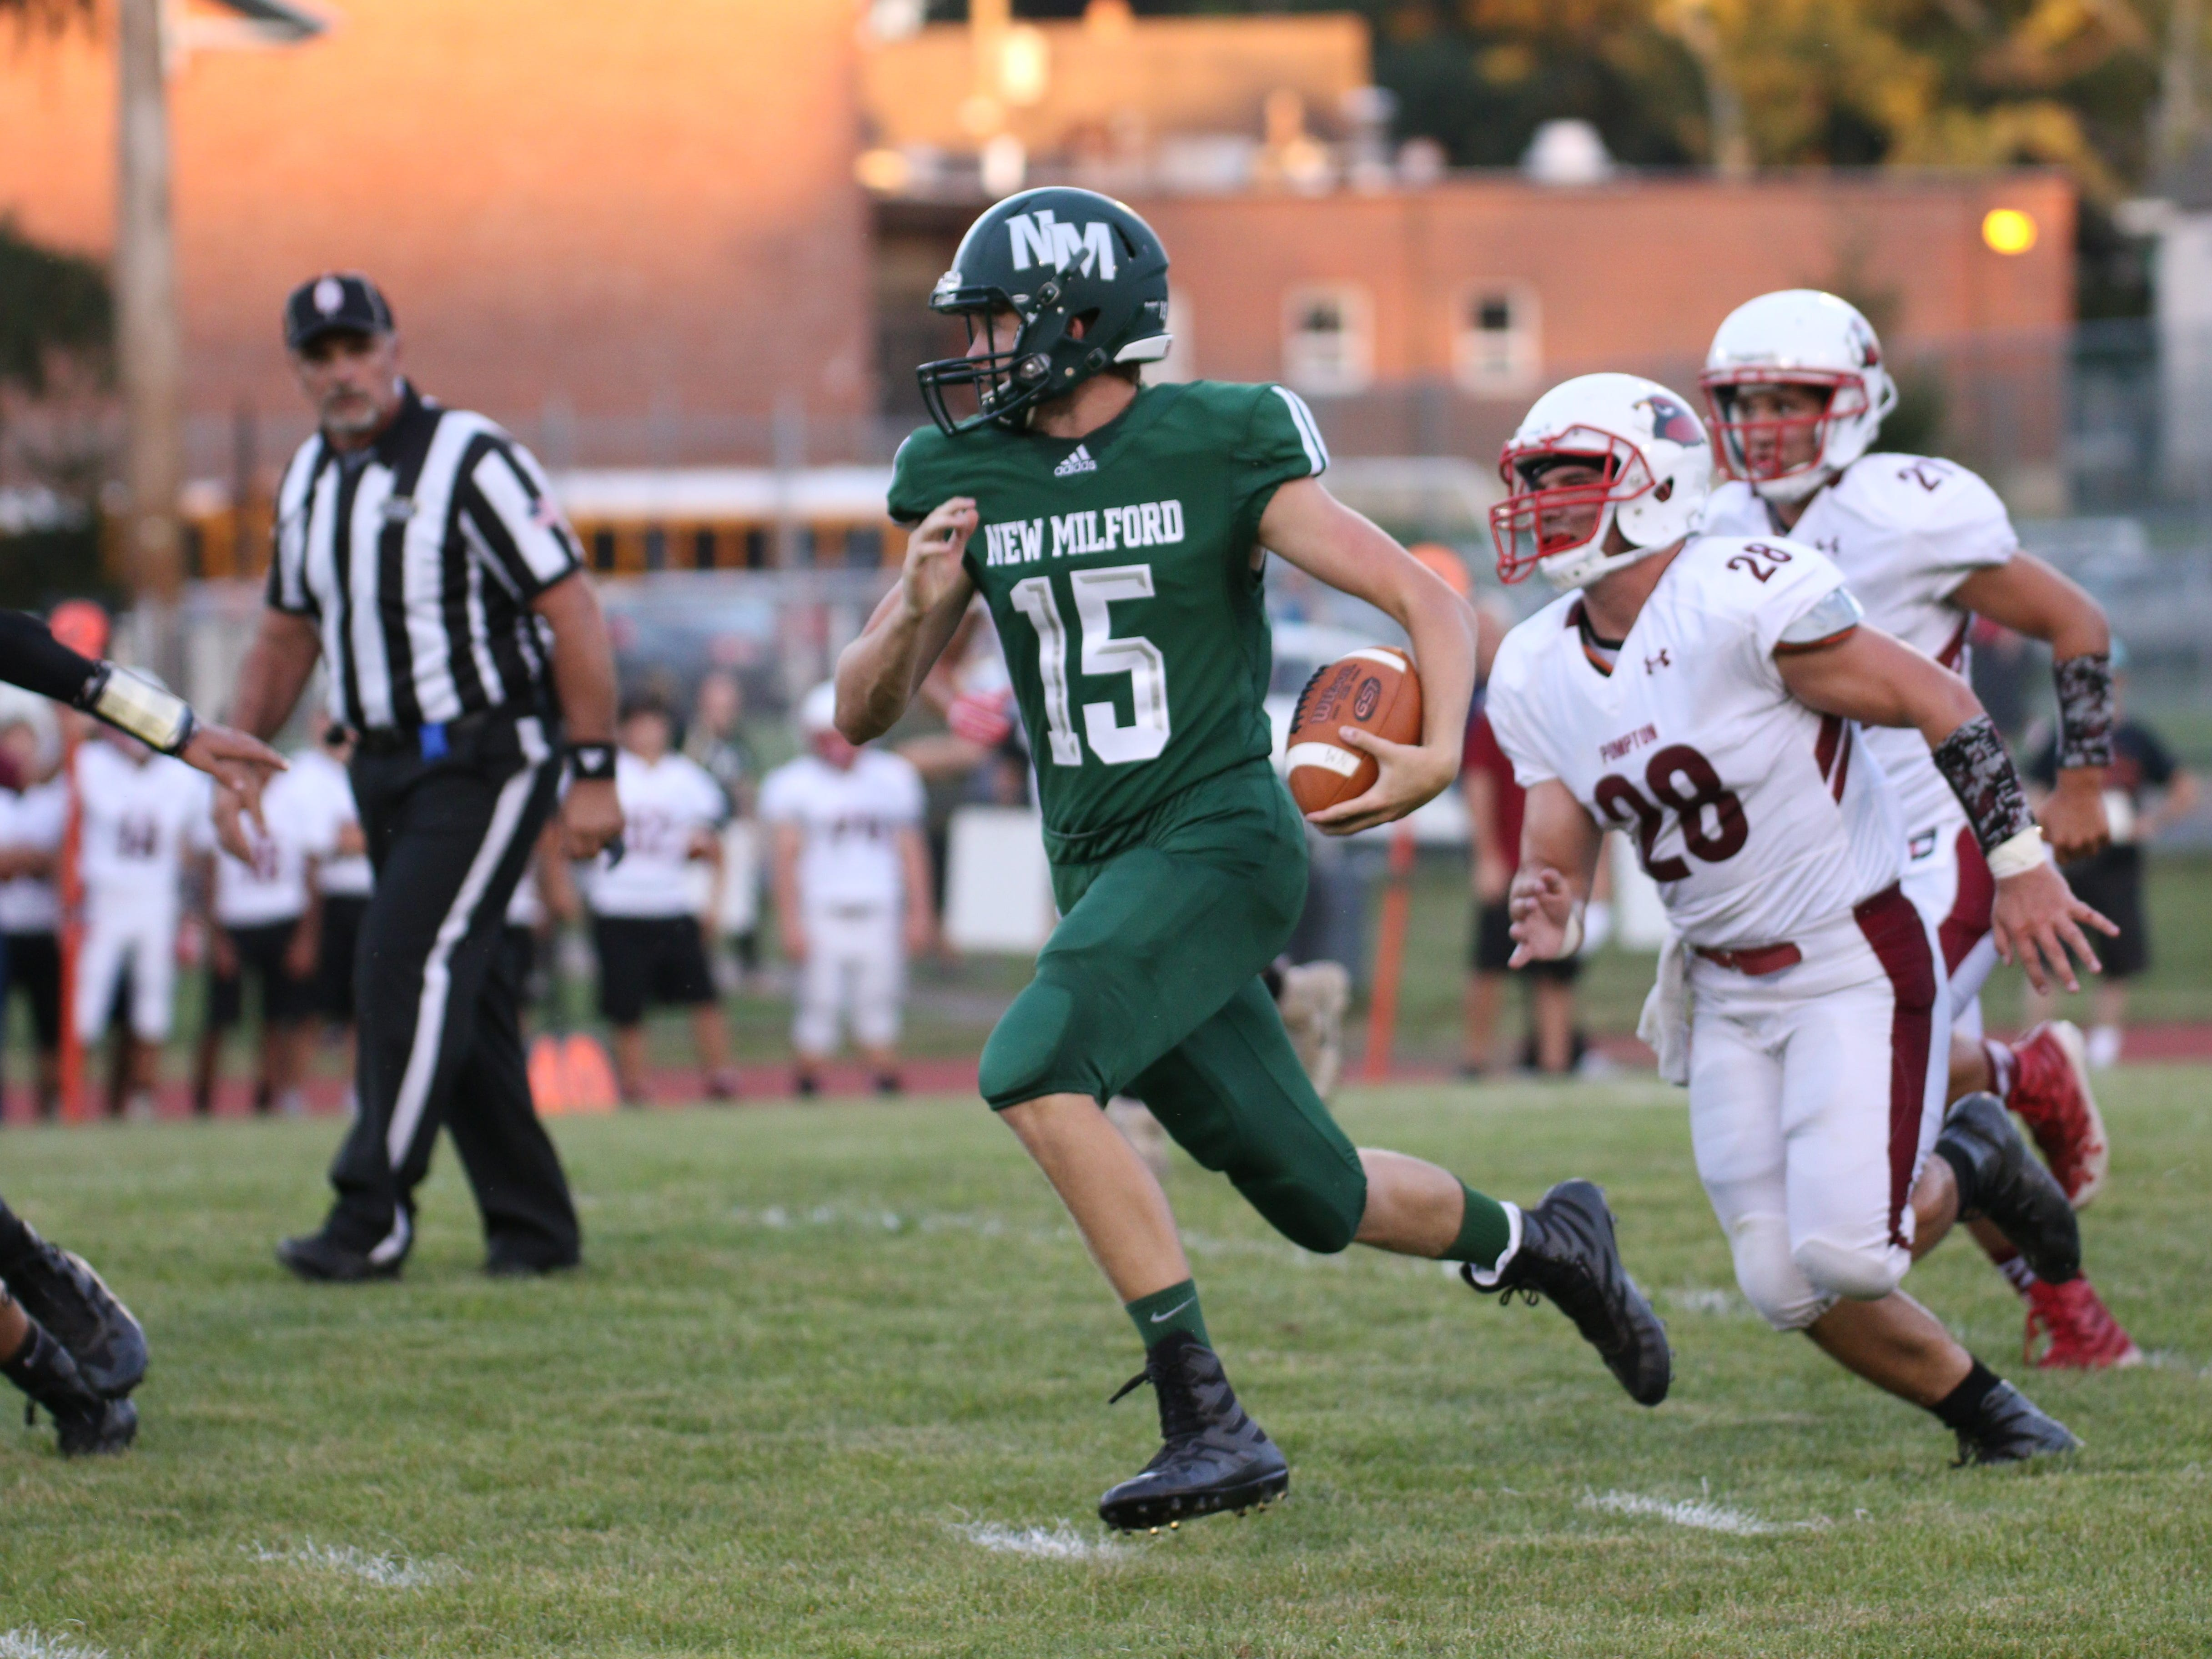 New Milford senior quarterback Brian Mackey looking for yardage against Pompton Lakes in an NJIC North Liberty Division game on opening day of high school football on Thursday, Aug. 30, 2018.